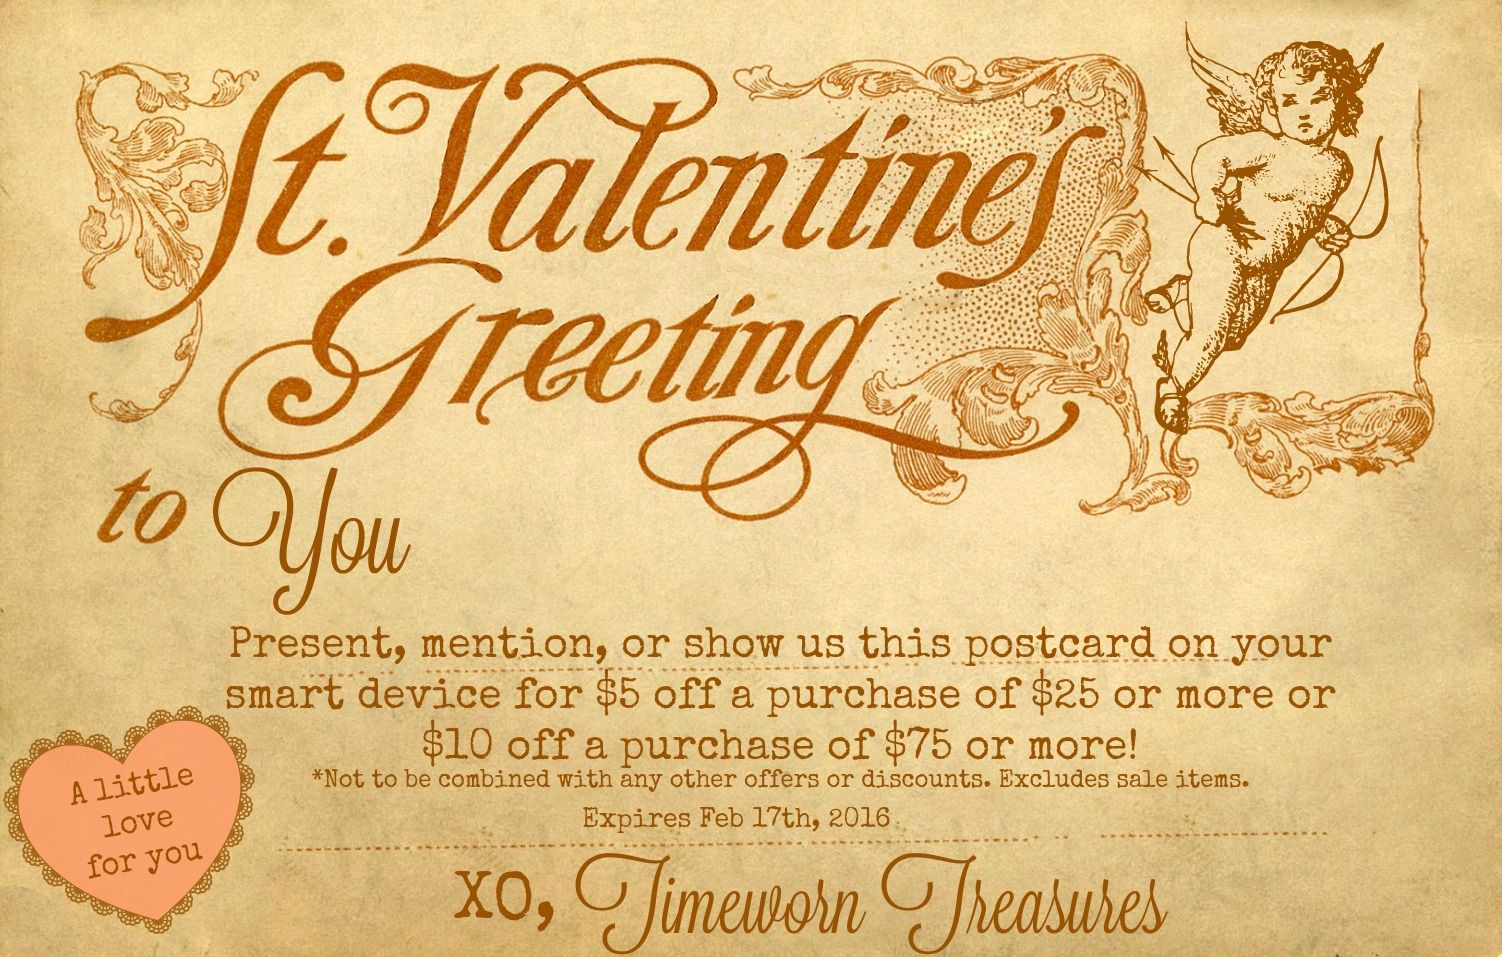 A Valentine For You - A coupon good @ our shop in Danville, PA. Present, mention, or show us this coupon on your smart device for $5 off a purchase of $25 or more or $10 off a purchase of $75 dollars or more! *Not to be combined with any other offers or discounts. Excludes sale items. Expires Feb. 17th, 2016. Timeworn Treasures  Happy Valentine's Day!  Vintage Valentine's Day postcard.